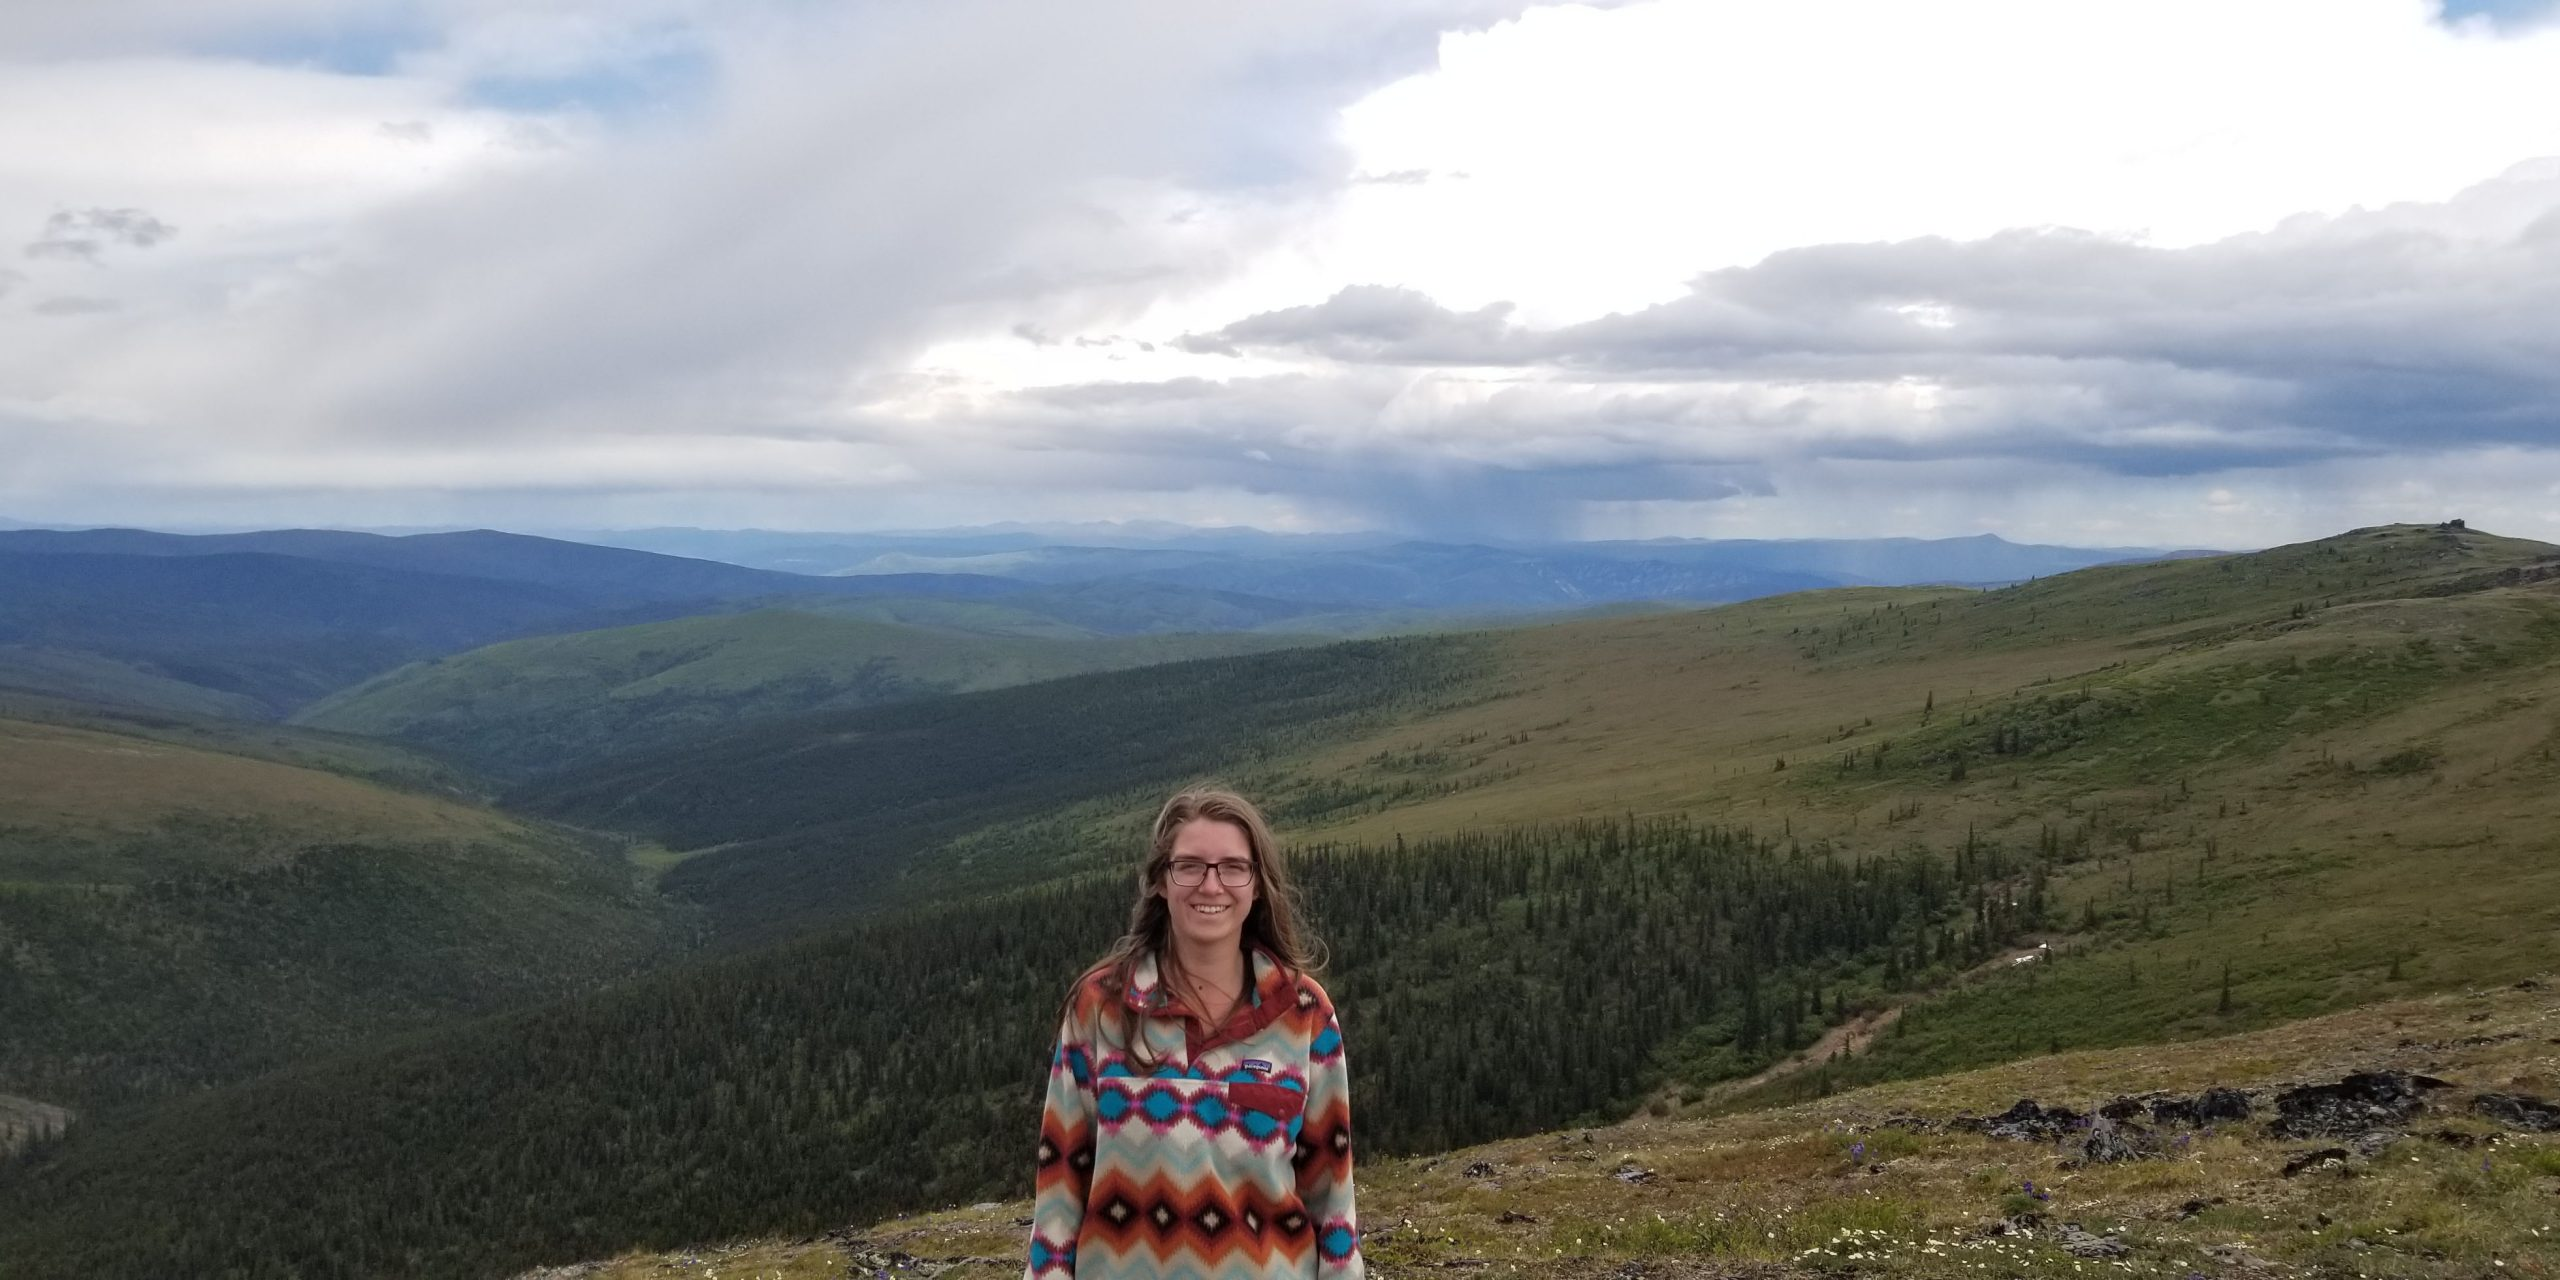 A female student with shoulder length brown hair posing in front of a mountain range, smiling.